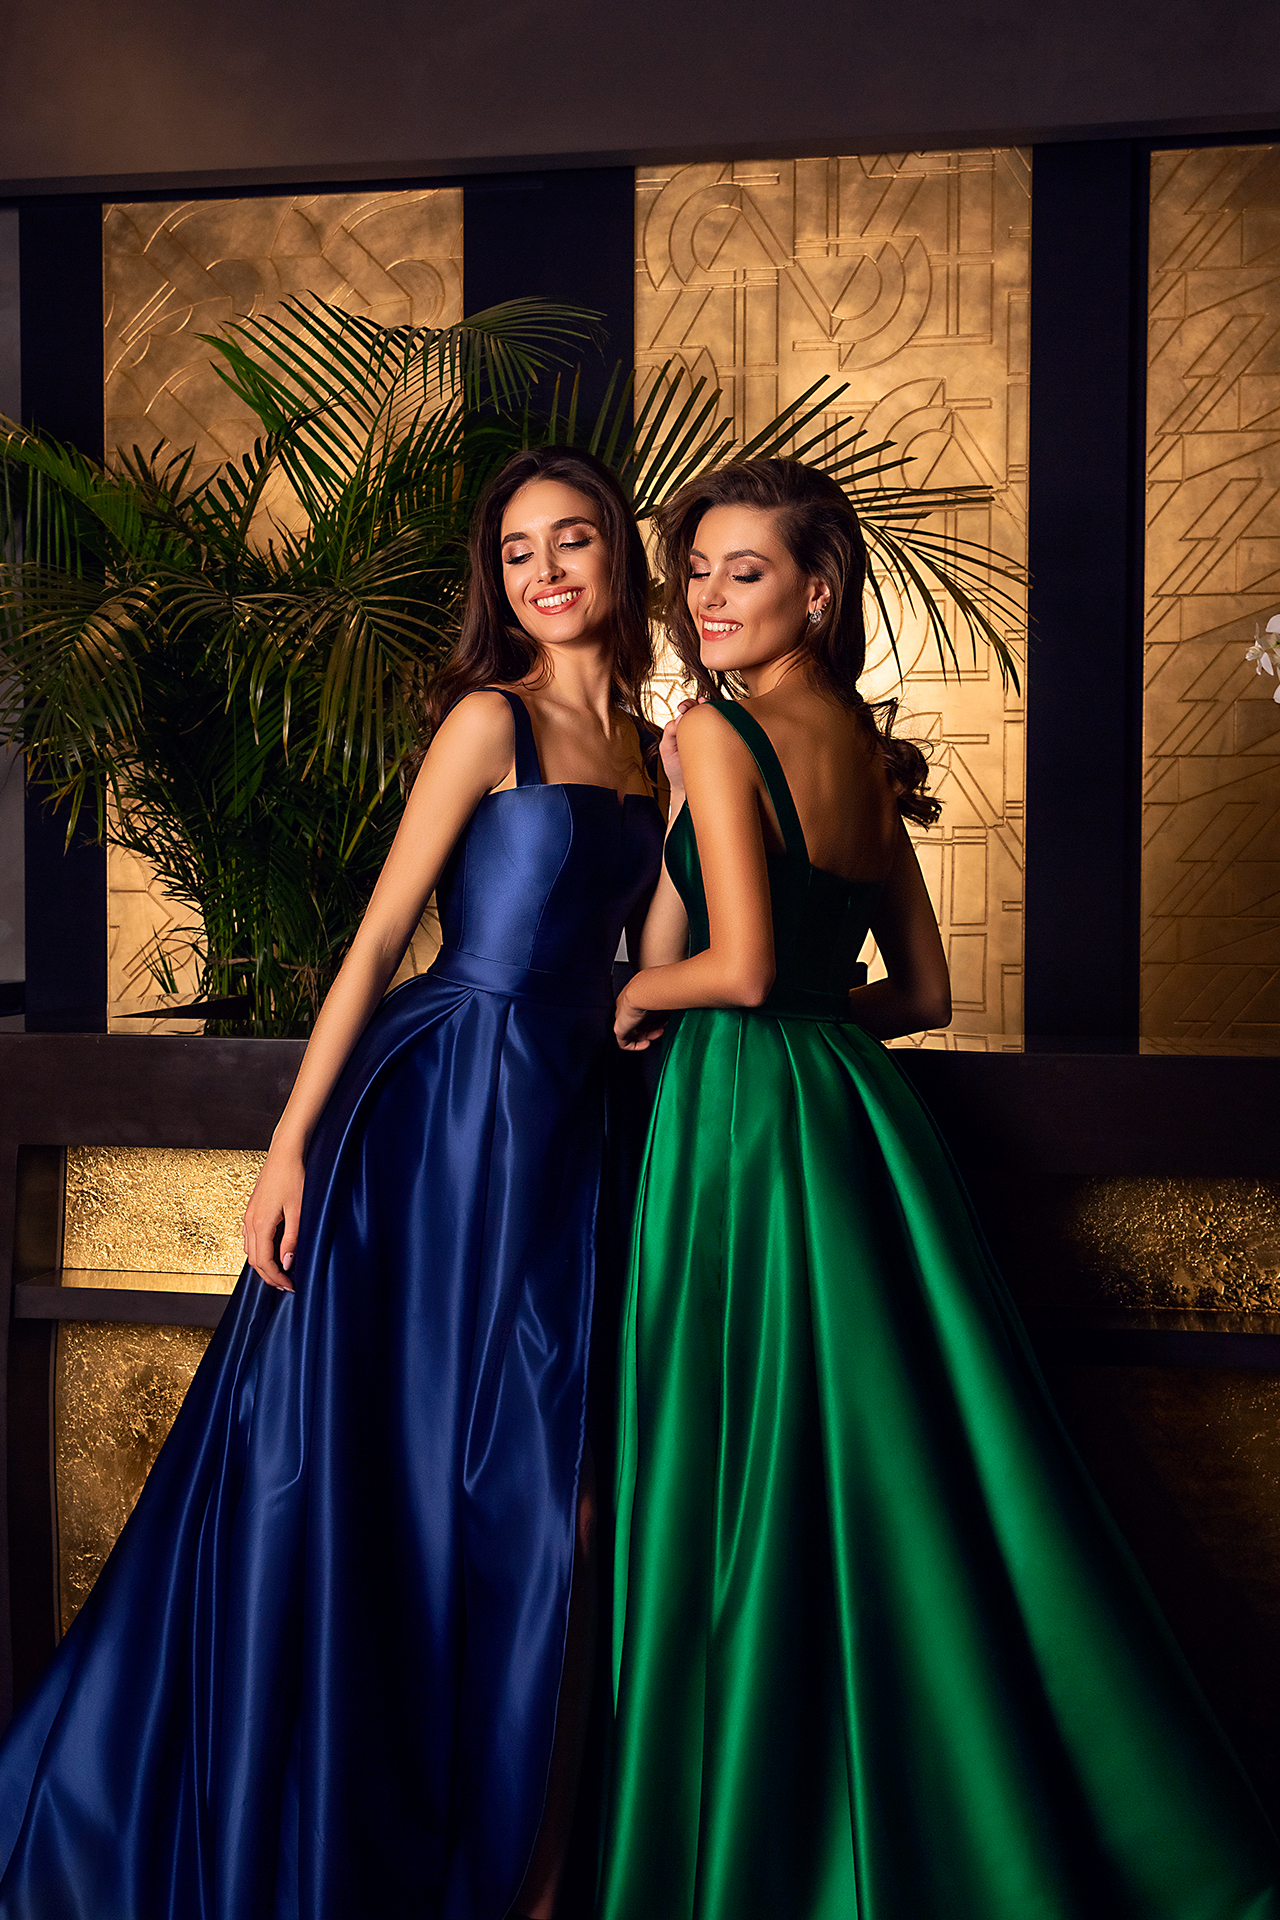 Evening Dresses 1607 Silhouette  A Line  Color  Blue  Green  Neckline  Straight  Sleeves  Wide straps - foto 4